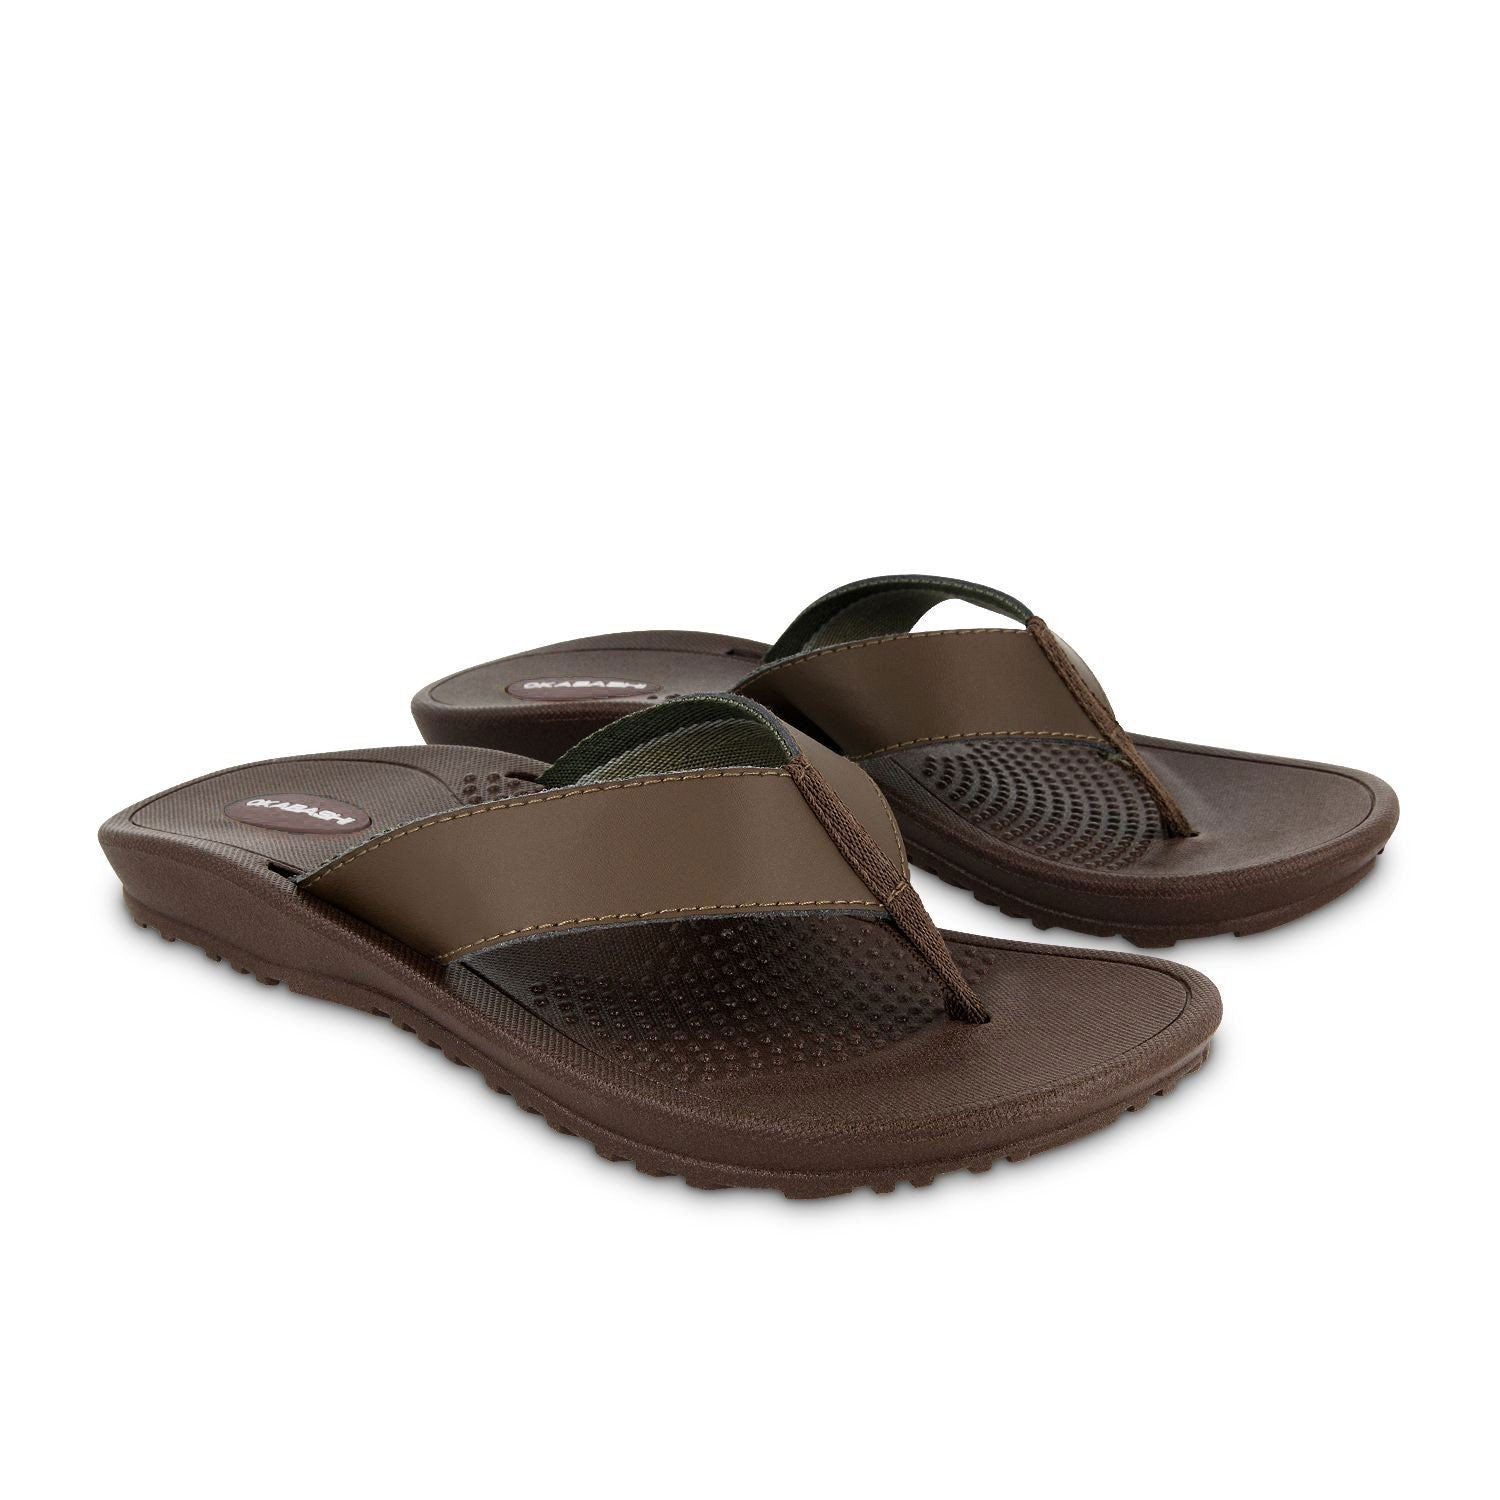 Mens Flip Flops And Sandals - American Made - Okabashi Shoes-7986